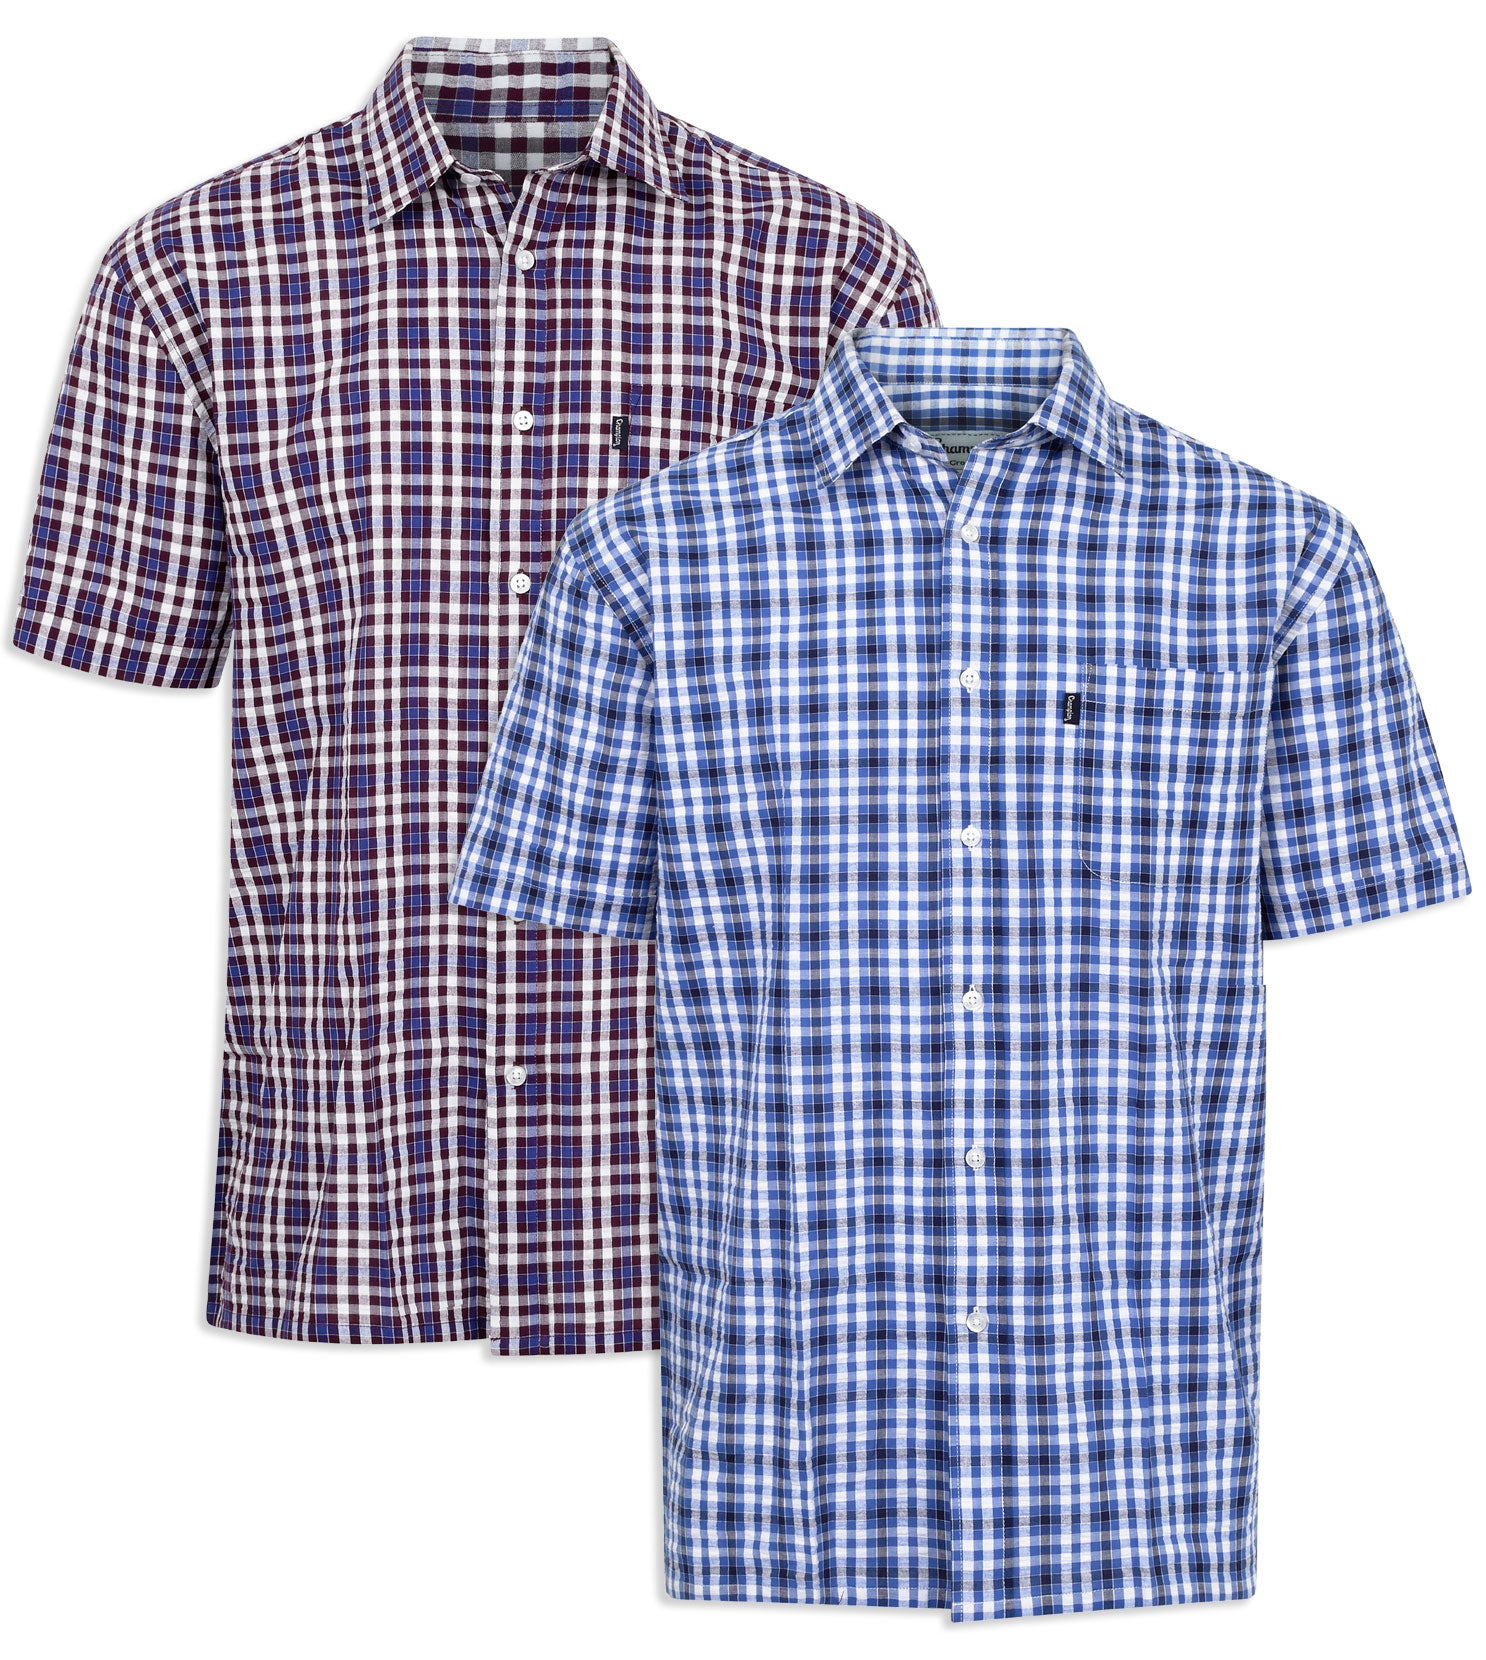 Champion Croyde All Cotton Short Sleeve Shirt in Red and Blue